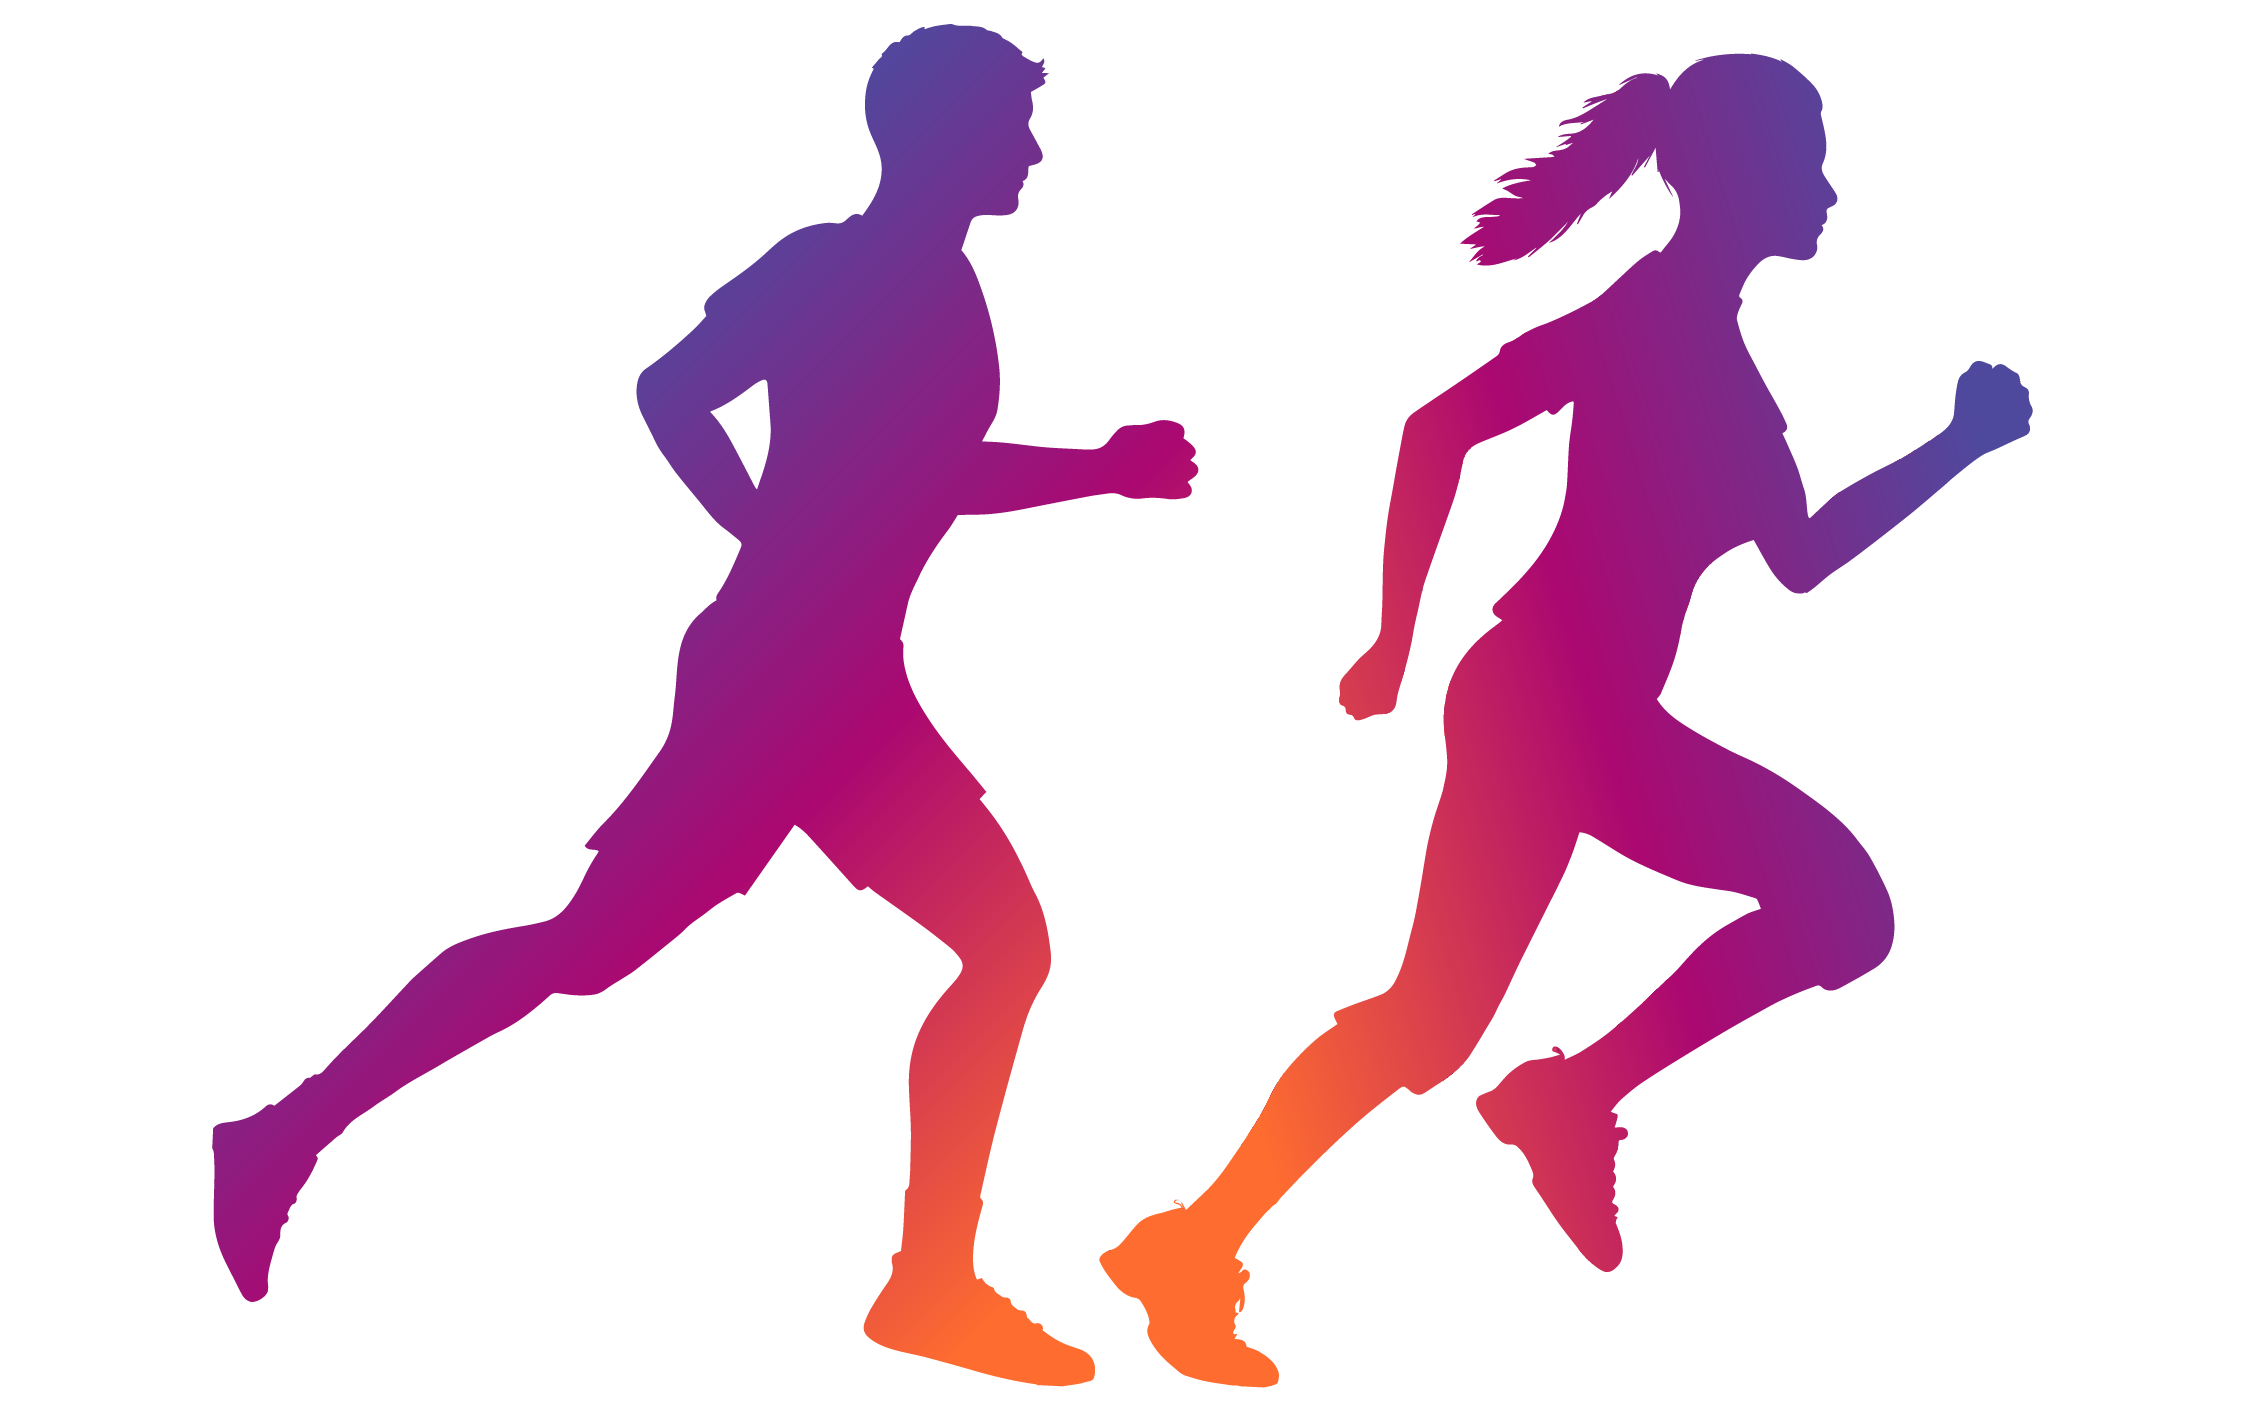 Runner silhouette png. About bounding plains to